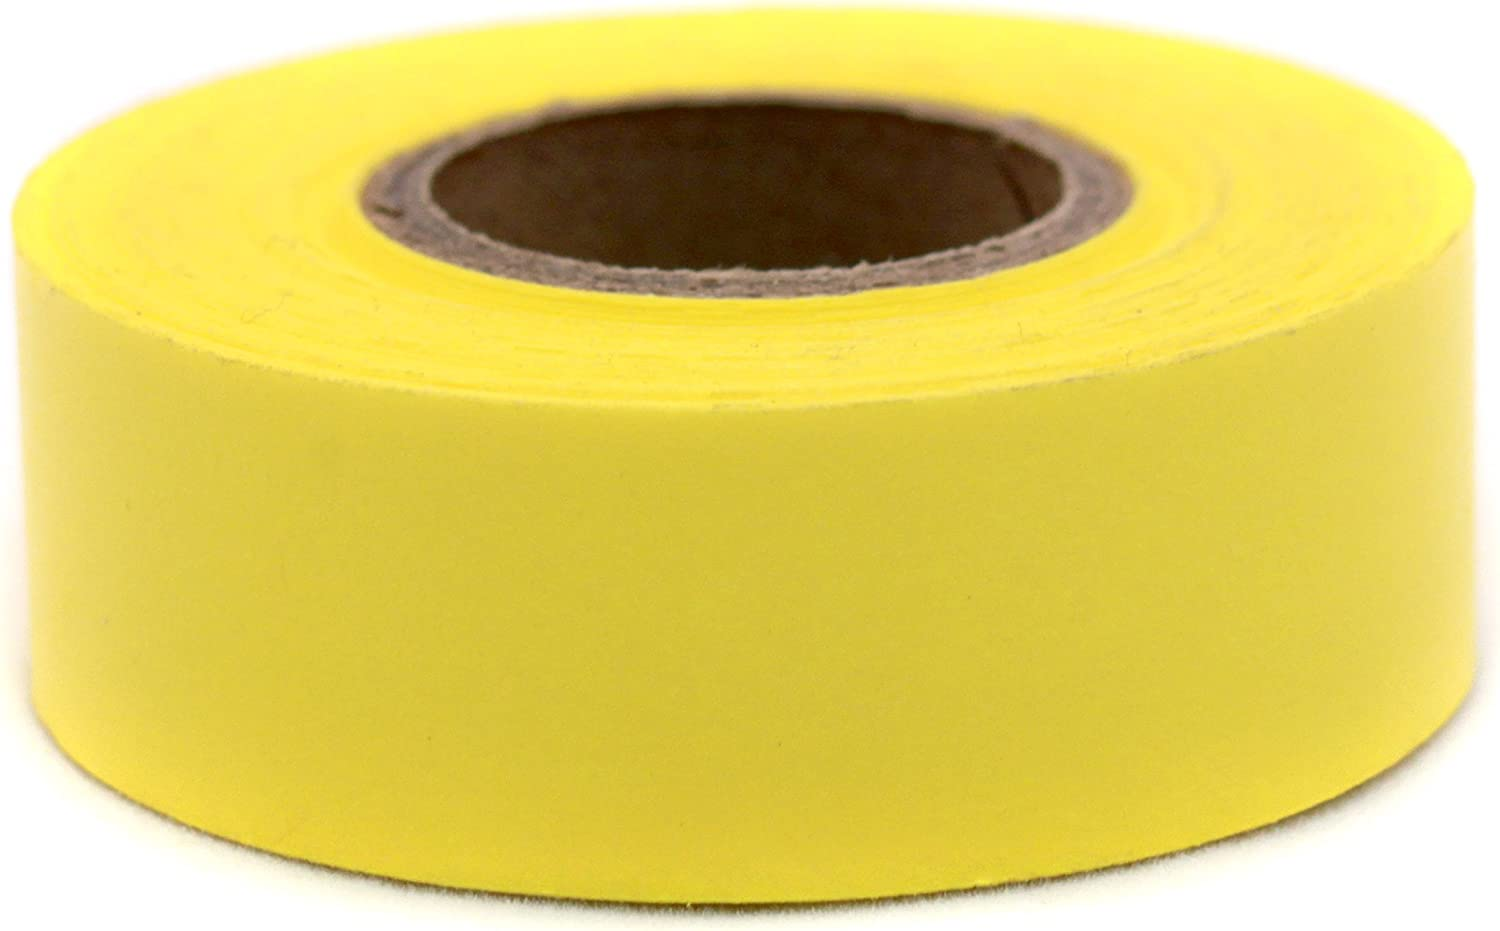 ChromaLabel 3/4 Inch Clean Remove Color-Code Tape, 500 Inch Roll, Yellow